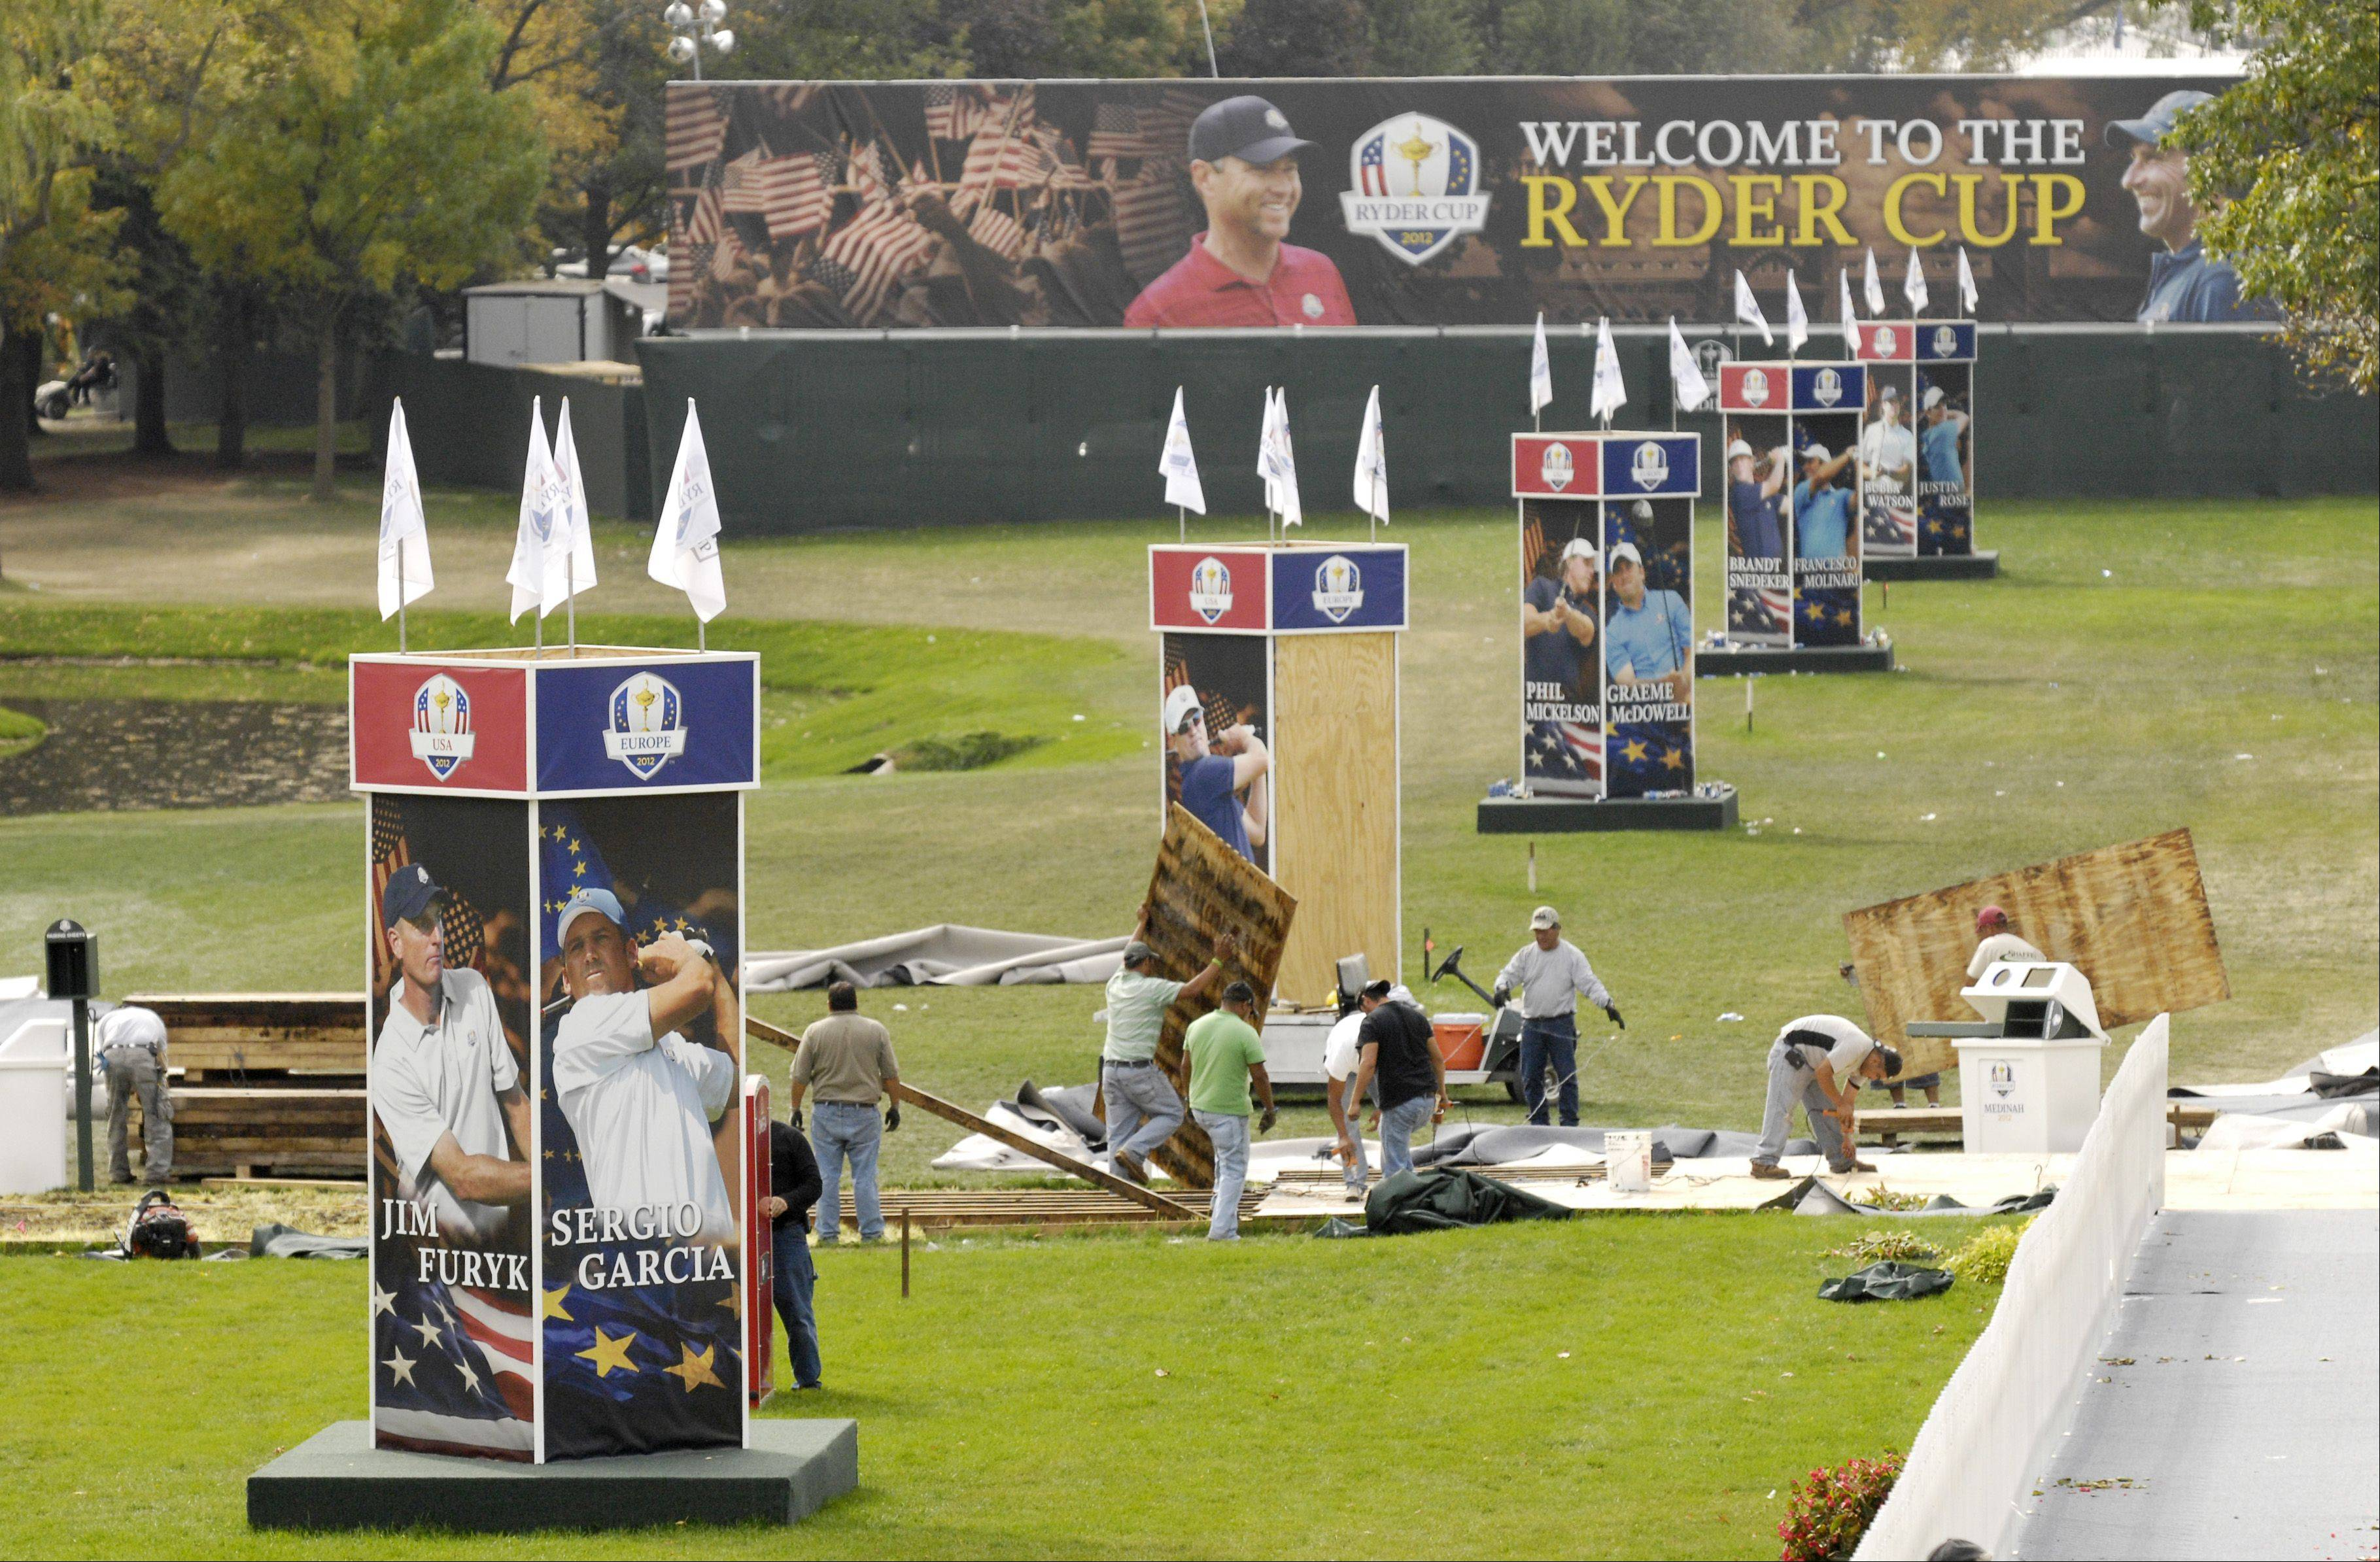 The spectator entrance ramps are dismantled in the wake of the 2012 Ryder Cup at Medinah.